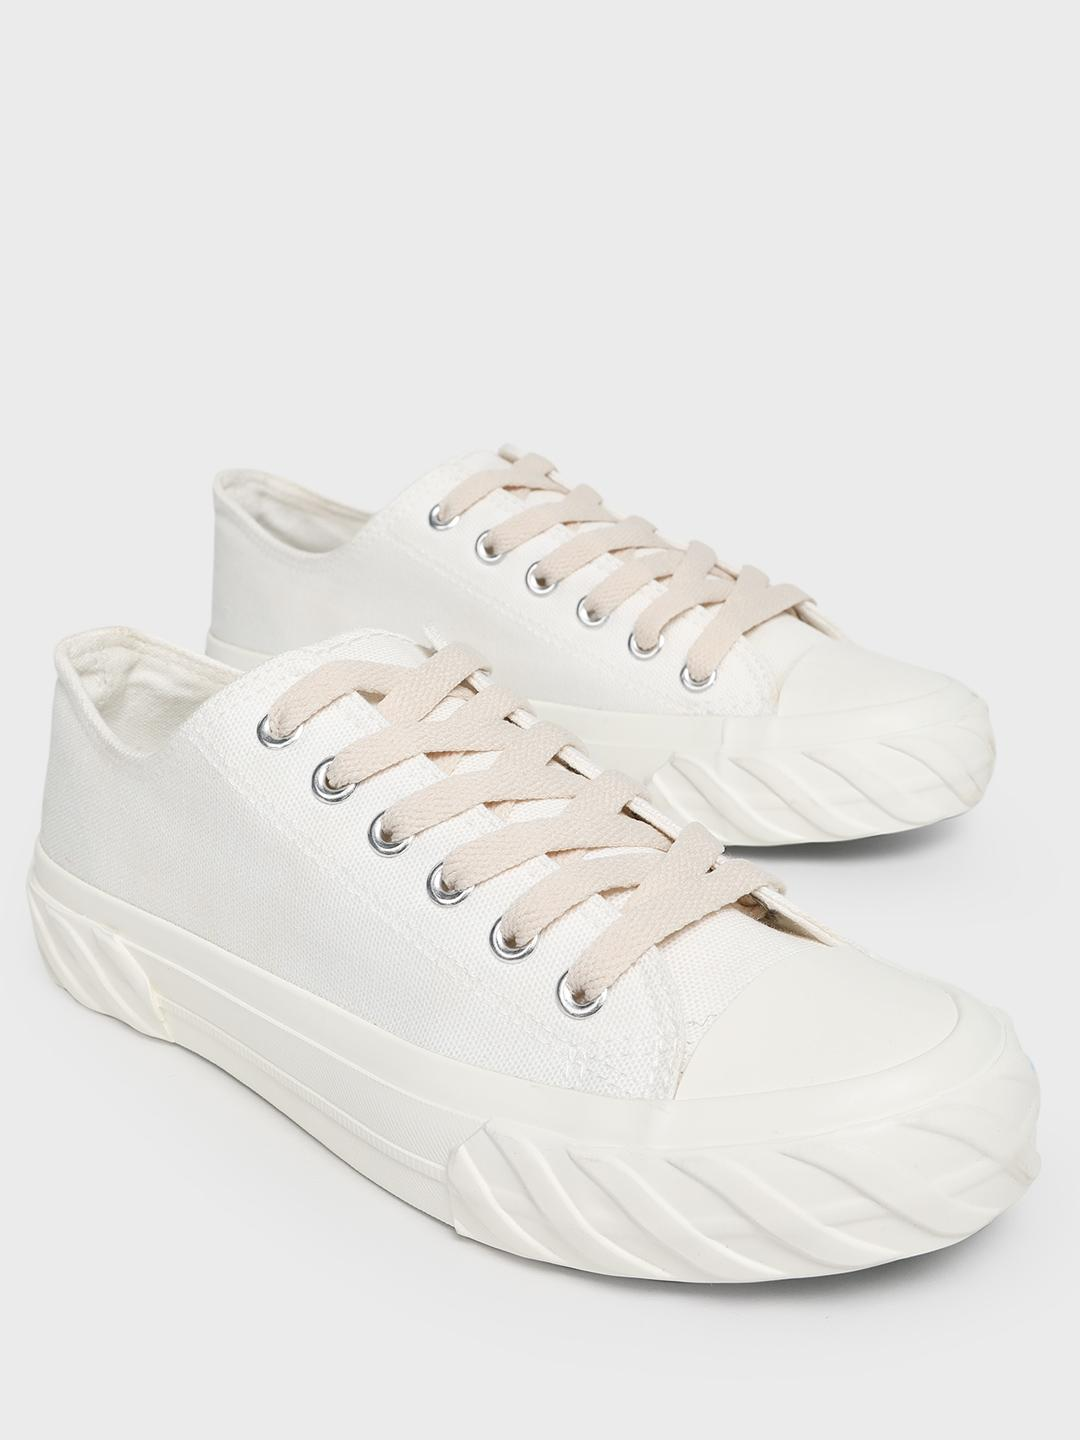 Sole Story White Canvas Lace-Up Flatform Sneakers 1